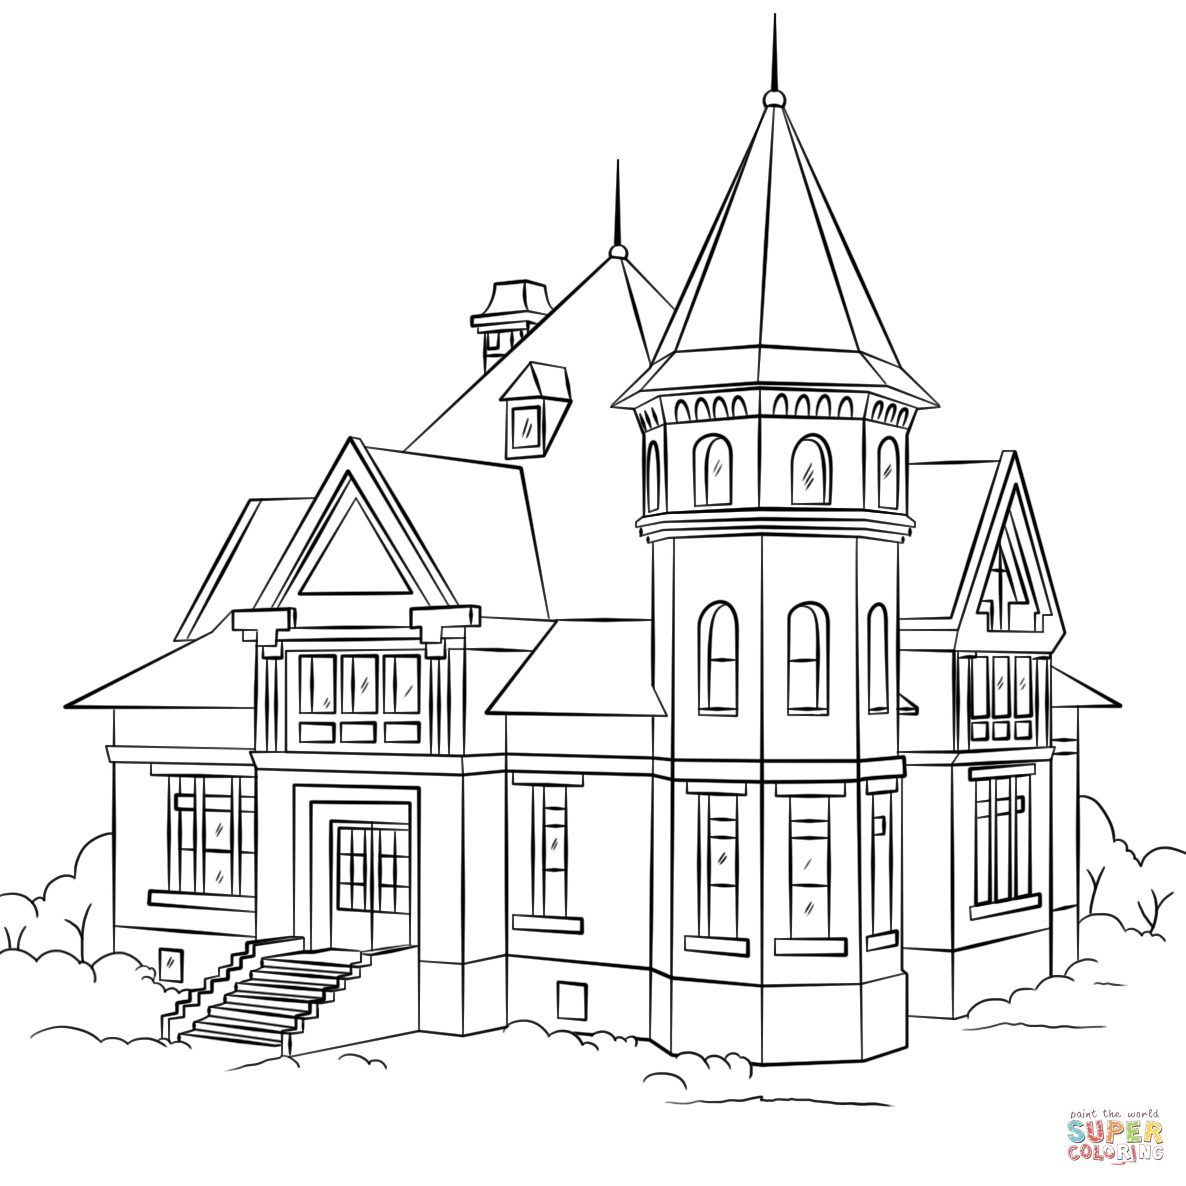 colouring pictures of houses victorian house coloring page free printable coloring pages pictures of houses colouring